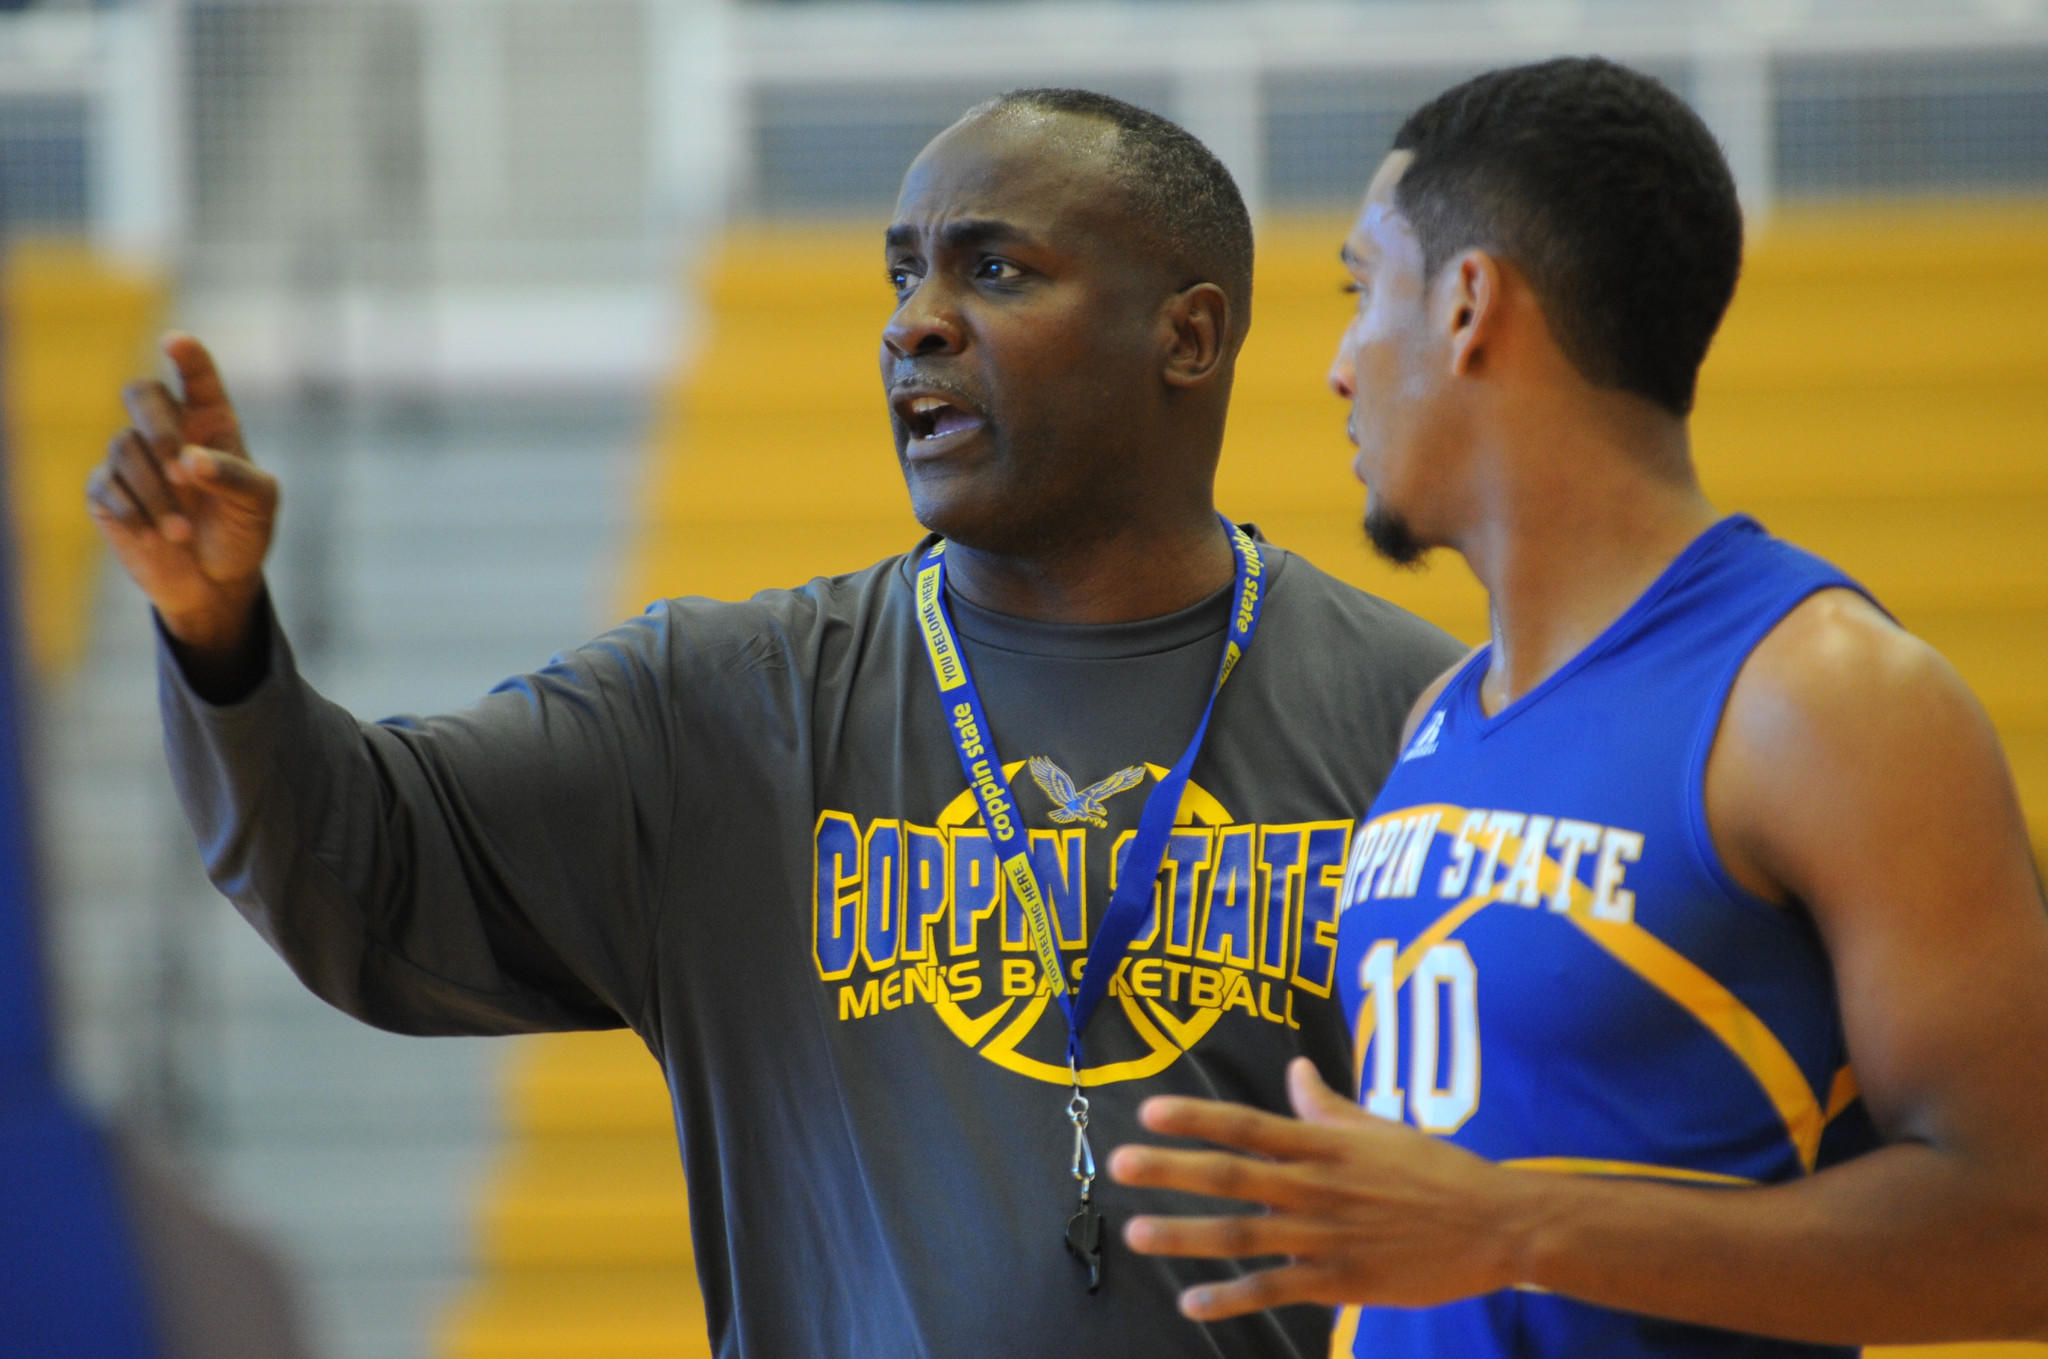 Michael Grant holds his first practice as Coppin State men's basketball coach.